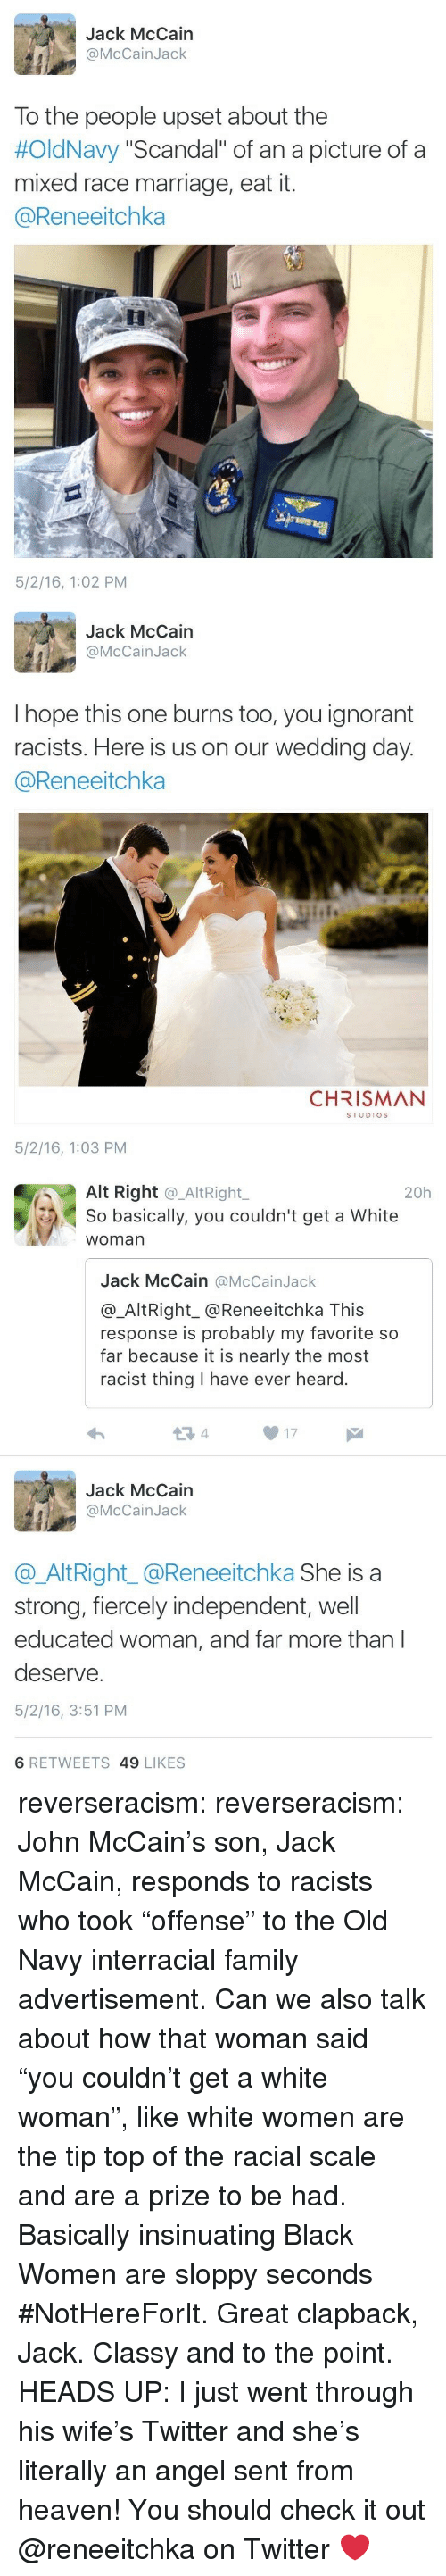 "alt-right: Jack McCain  @McCainJack  To the people upset about the  #OldNavy ""Scandal"" of an a picture of a  mixed race marriage, eat it.  @Reneeitchka  5/2/16, 1:02 PM   Jack McCain  @McCainJack  I hope this one burns too, you ignorant  racists. Here is us on our wedding day  @Reneeitchka  CHRISMAN  STUDIOS  5/2/16, 1:03 PM   Alt Right @_AltRight,  So basically, you couldn't get a White  woman  20h  Jack McCain @McCainJack  @_AltRight_@Reneeitchka This  response is probably my favorite so  far because it is nearly the most  racist thing I have ever heard.  13 4  17  Jack McCain  @McCainJack  @AltRight_@Reneeitchka She is a  strong, fiercely independent, well  educated woman, and far more than l  deserve.  5/2/16, 3:51 PM  6 RETWEETS 49 LIKES reverseracism: reverseracism:  John McCain's son, Jack McCain, responds to racists who took ""offense"" to the Old Navy interracial family advertisement.   Can we also talk about how that woman said ""you couldn't get a white woman"", like white women are the tip top of the racial scale and are a prize to be had. Basically insinuating Black Women are sloppy seconds #NotHereForIt. Great clapback, Jack. Classy and to the point.  HEADS UP: I just went through his wife's Twitter and she's literally an angel sent from heaven!  You should check it out @reneeitchka on Twitter ❤️"